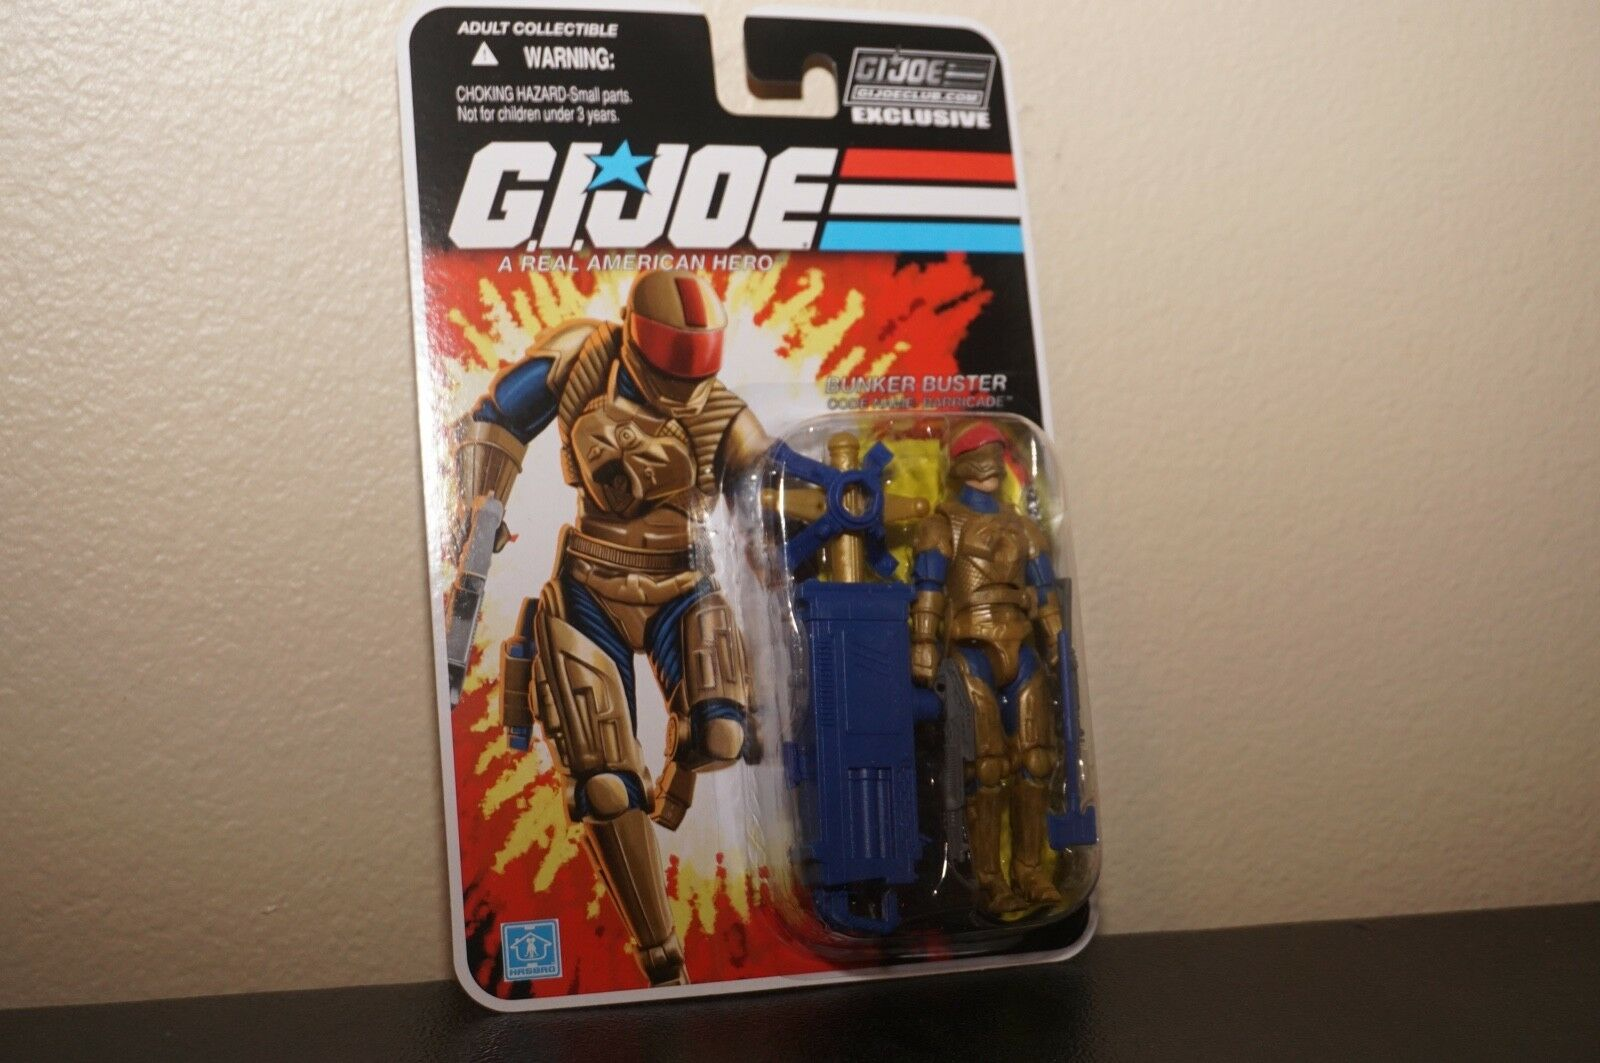 GI JOE BARRICADE FSS 4.0 Con Collectors Club Exclusive Exclusive Exclusive  2016 Rare New 4bf5f8